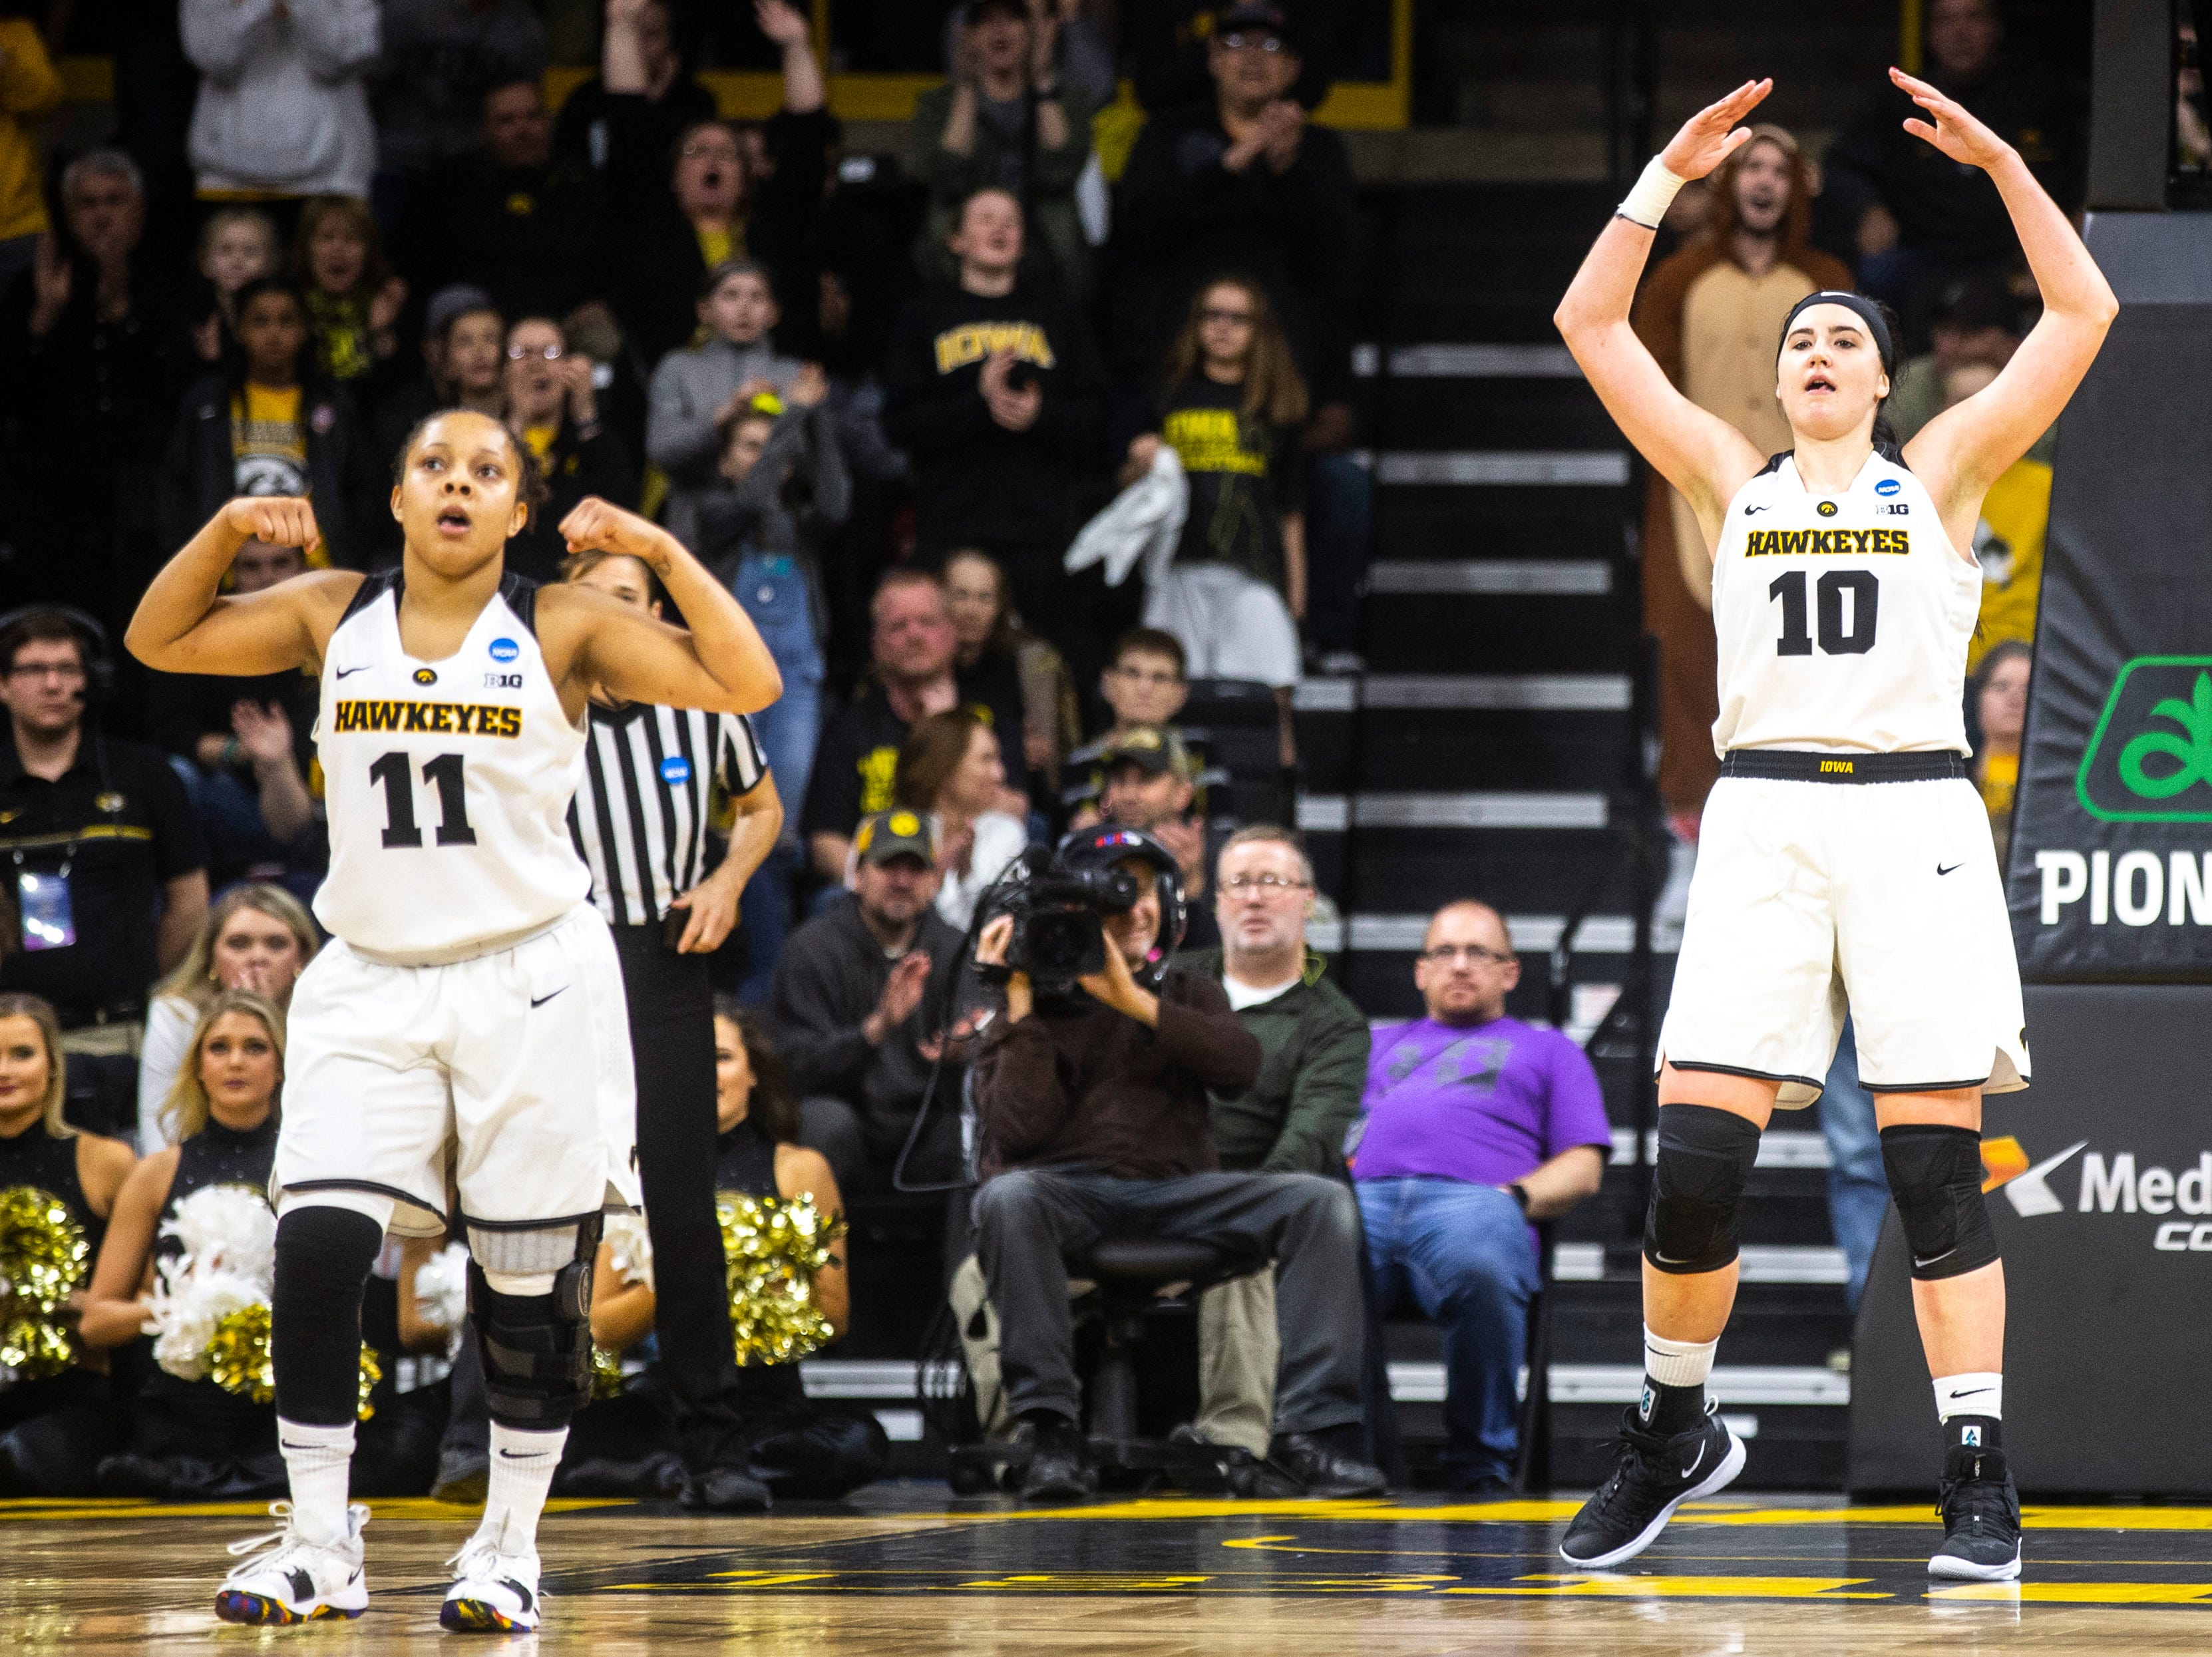 Iowa center Megan Gustafson (10) pumps up the crowd with Iowa guard Tania Davis (11) while they settle in on defense during a NCAA women's basketball tournament second-round game, Sunday, March 24, 2019, at Carver-Hawkeye Arena in Iowa City, Iowa.